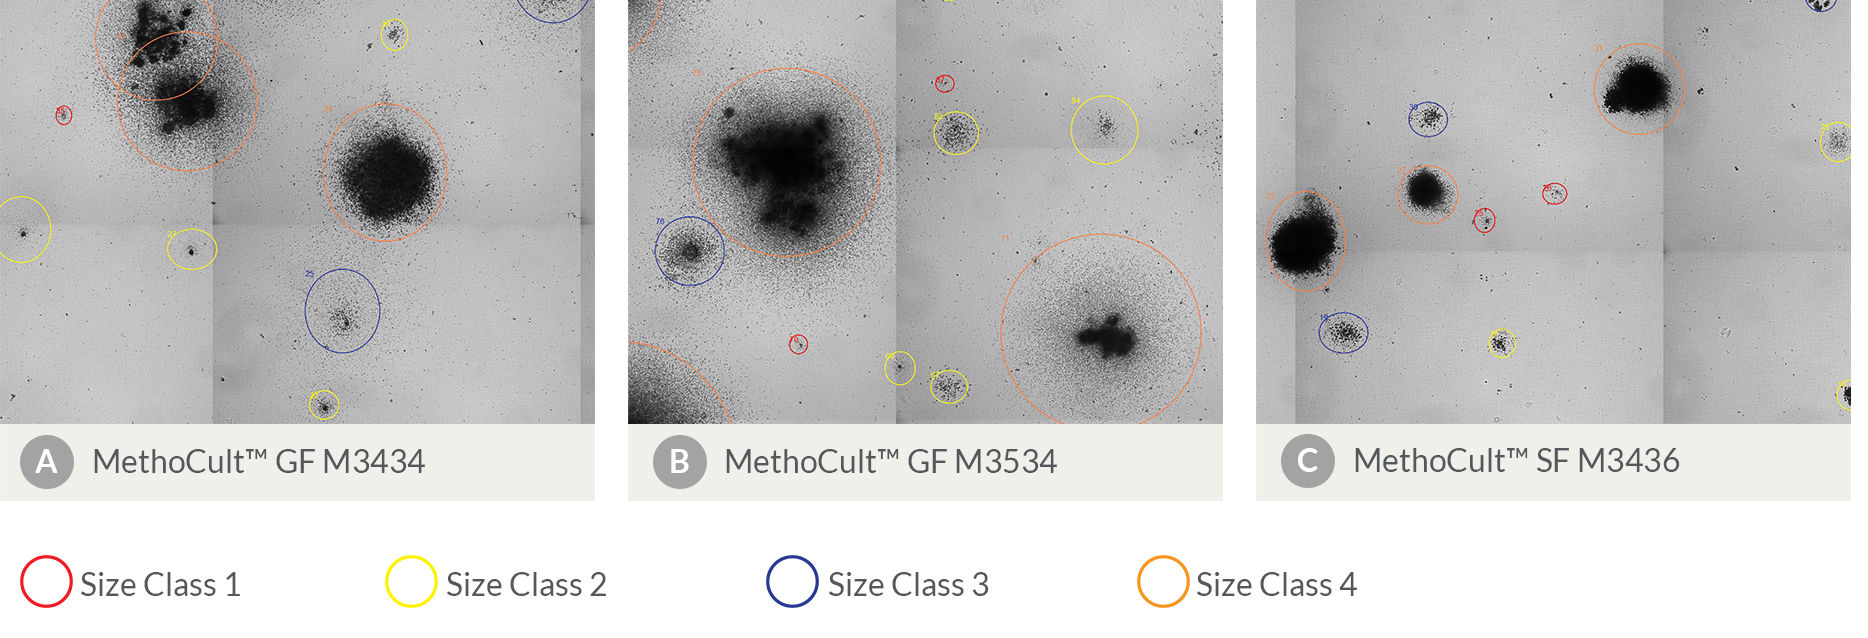 Automated CFU counter, STEMvision™, images and analyses mouse CFU colonies